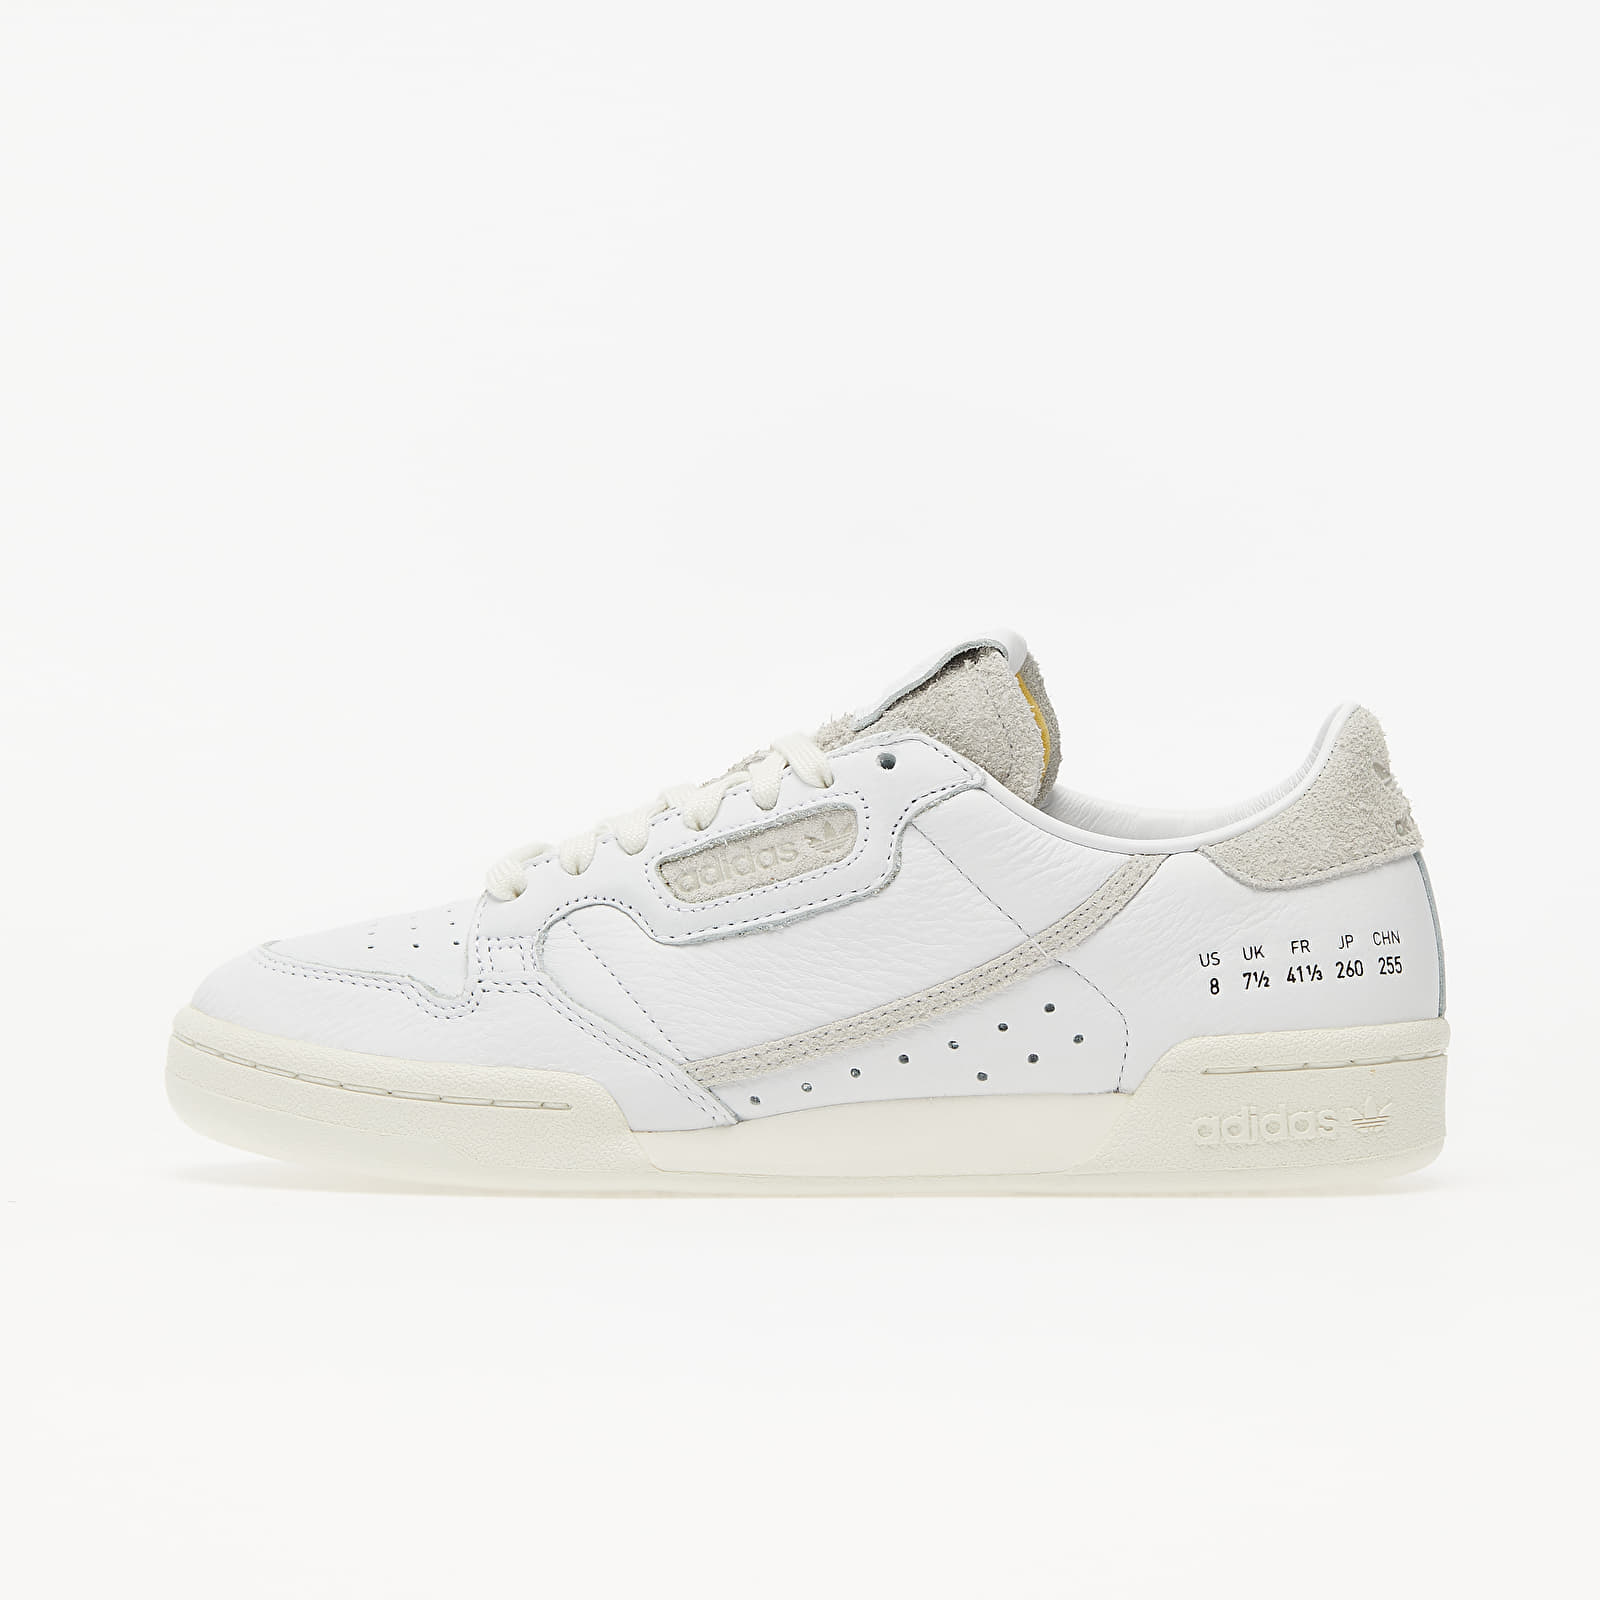 Мужская обувь adidas Continental 80 Ftw White/ Crystal White/ Off White